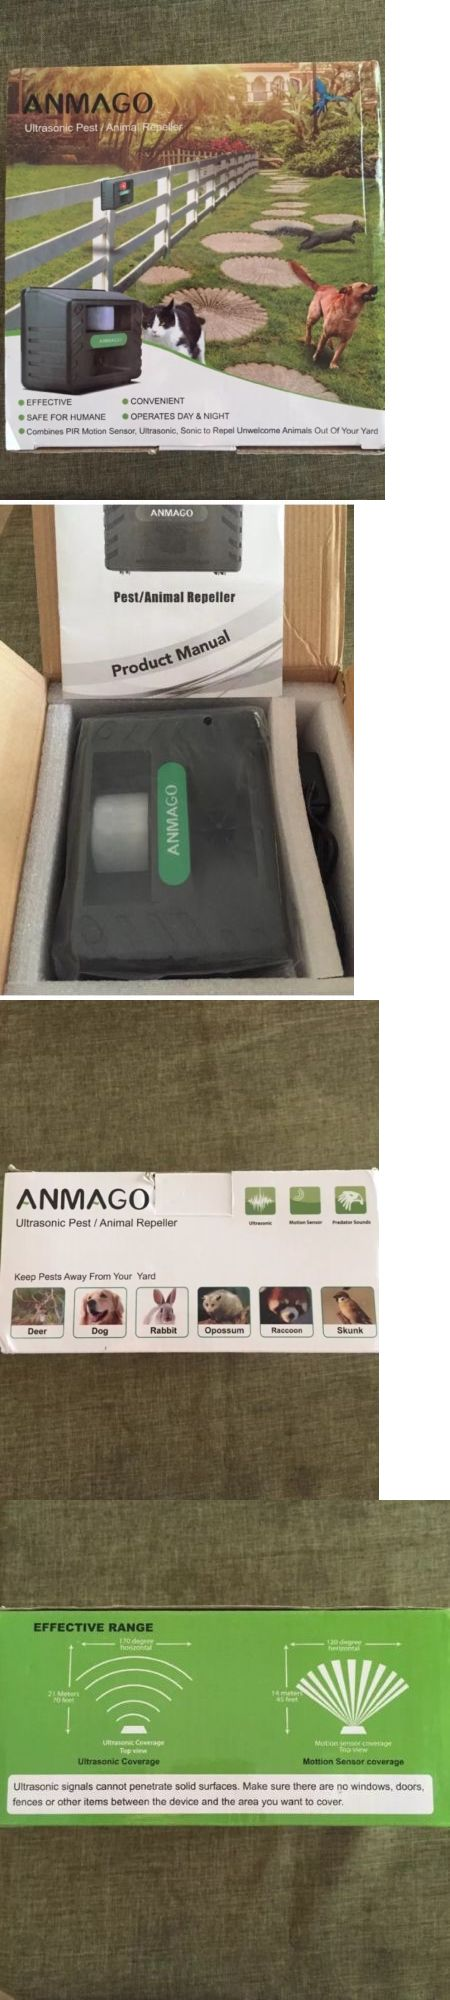 Ultrasonic Pest Repellers 181035: Anmago Animal Repellent Ultrasonic, Outdoor Electronic Pest Animal Control New -> BUY IT NOW ONLY: $32.99 on eBay!